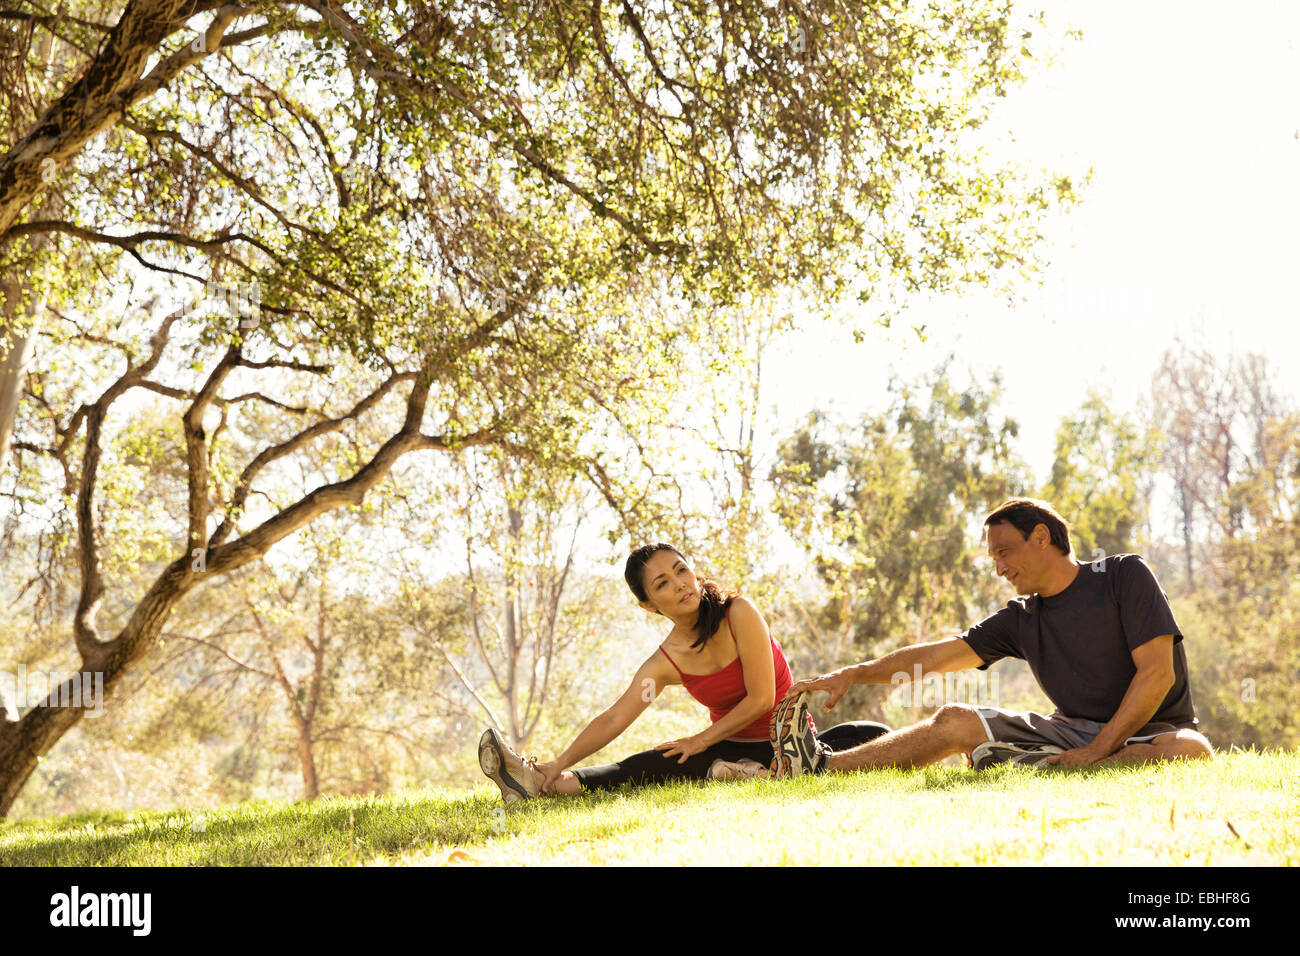 Mature running couple warming up touching toes in park - Stock Image